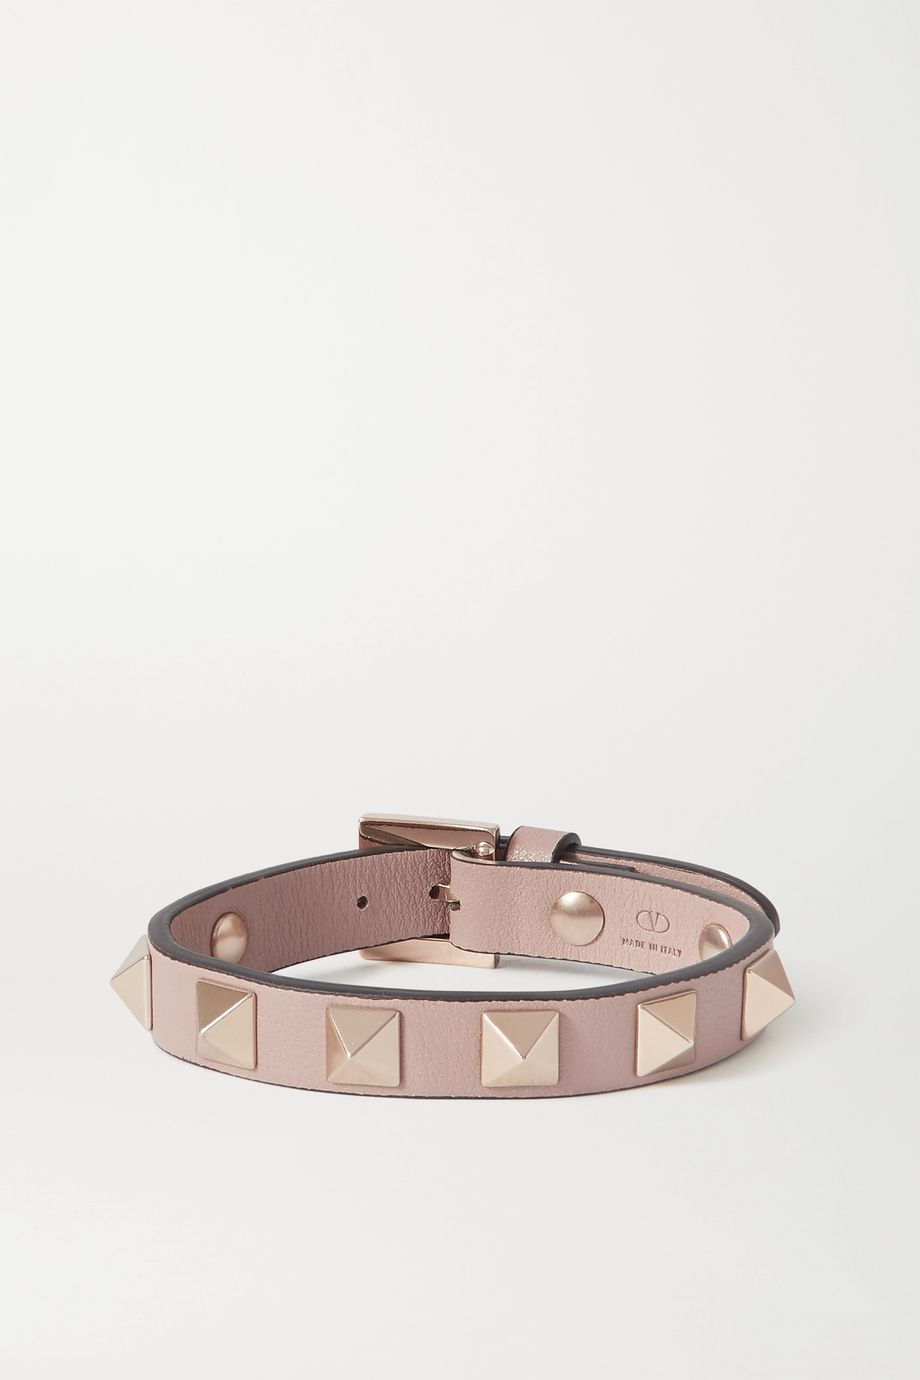 VALENTINO Valentino Garavani The Rockstud leather bracelet